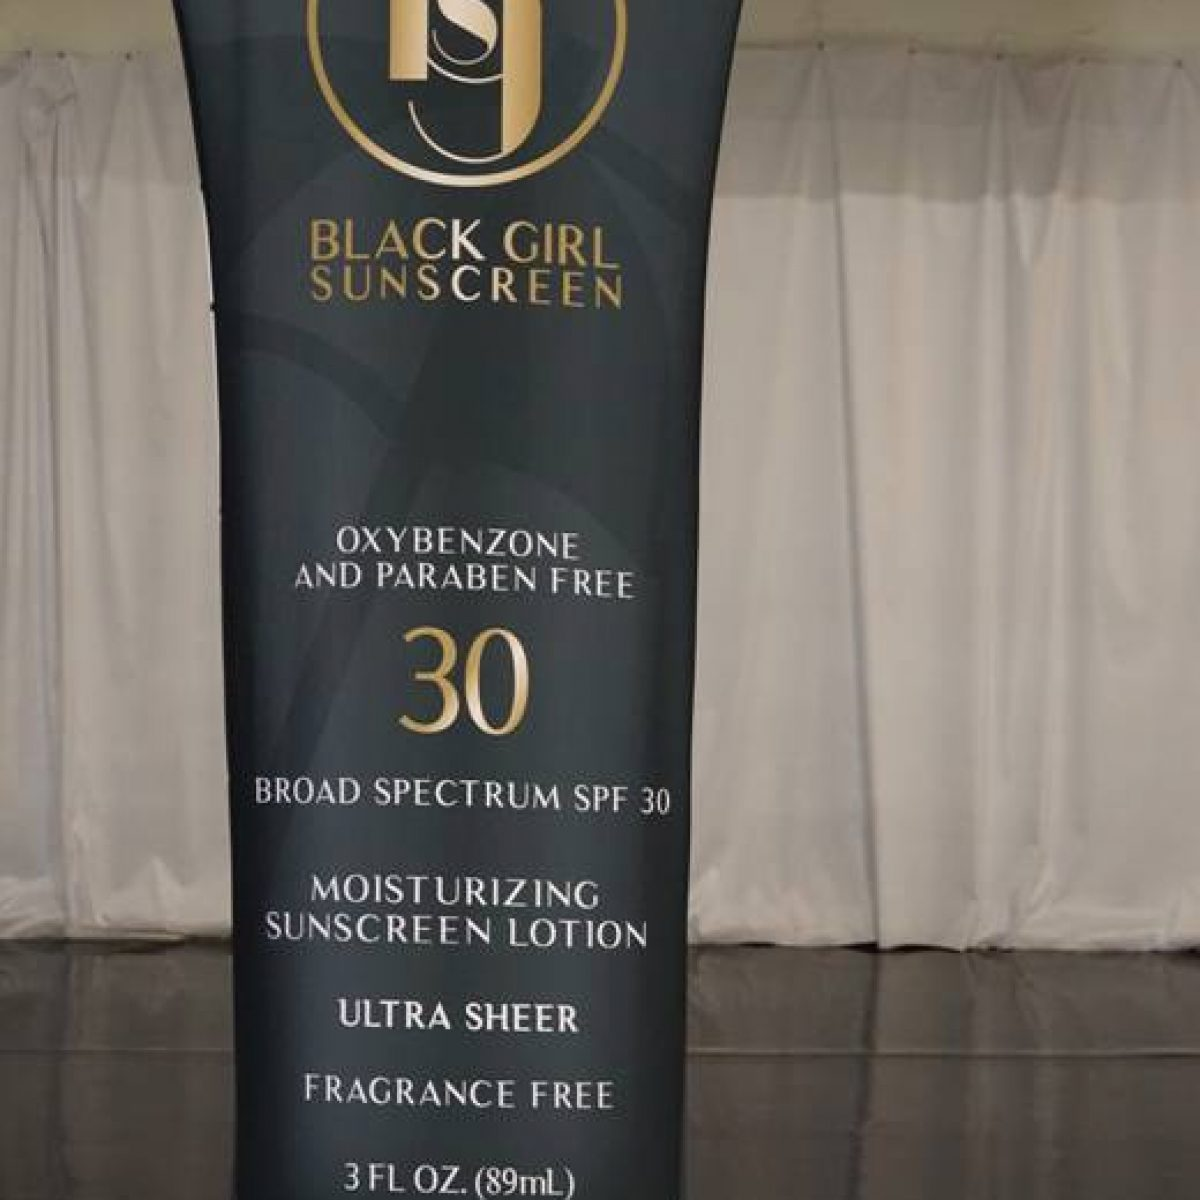 26) Black Girl Sunscreen Tension Fabric Banner Stand - 1